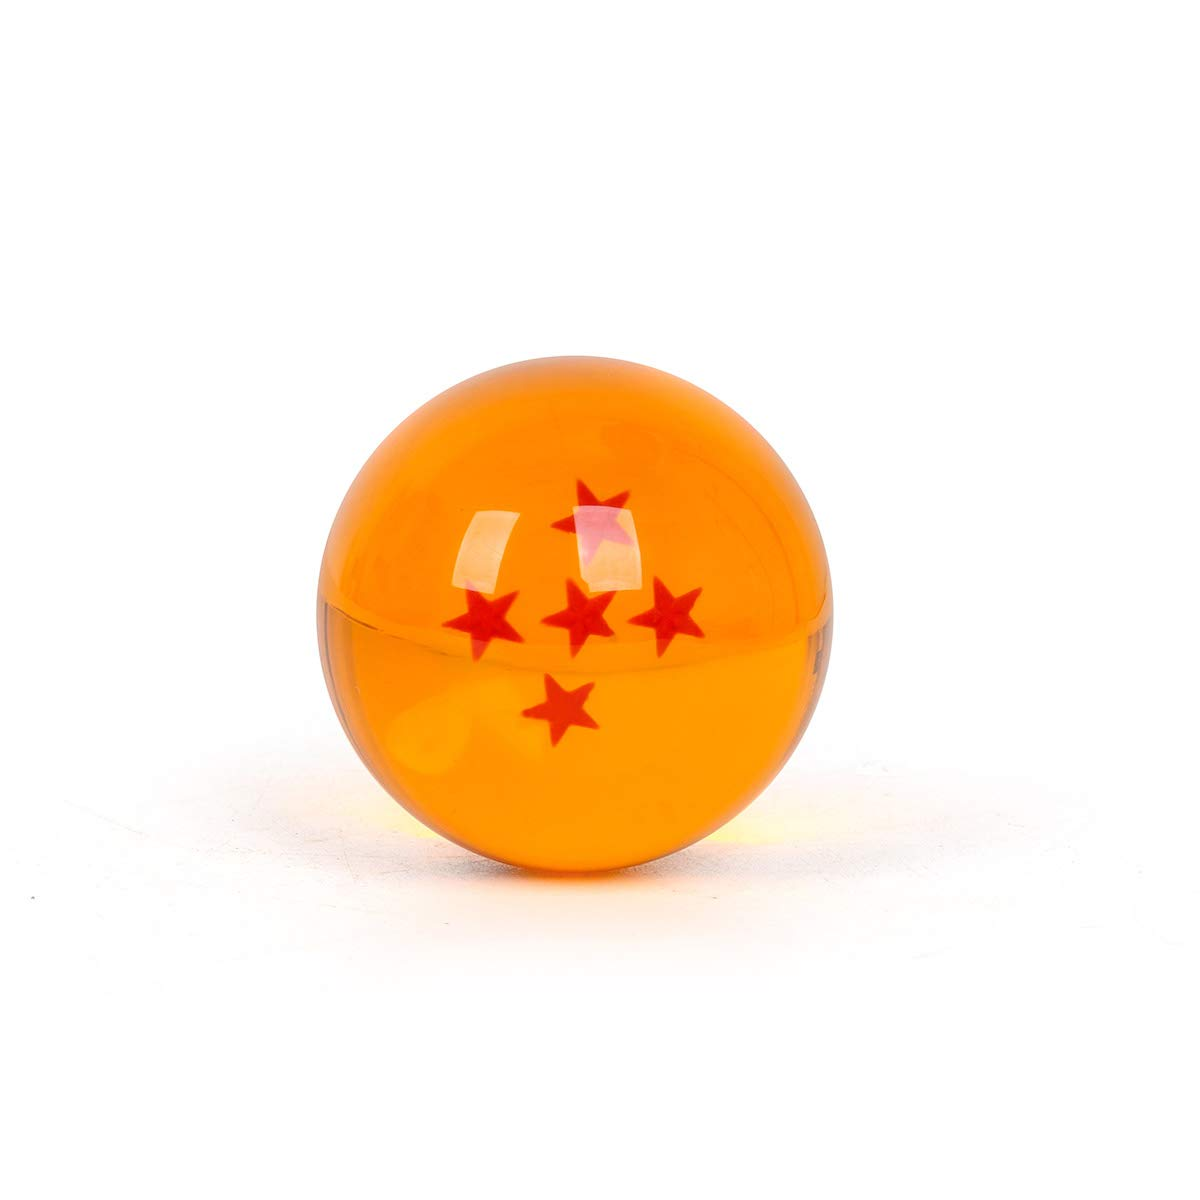 WeizhaonanCos Unisex Acrylic Resin Transparent Stars Balls Glass Ball Dragon Ball Cosplay Props Kids Play Toy Gift Set of 7pcs 43mm/1.7 in in Diameter (Orange) by WeizhaonanCos (Image #6)